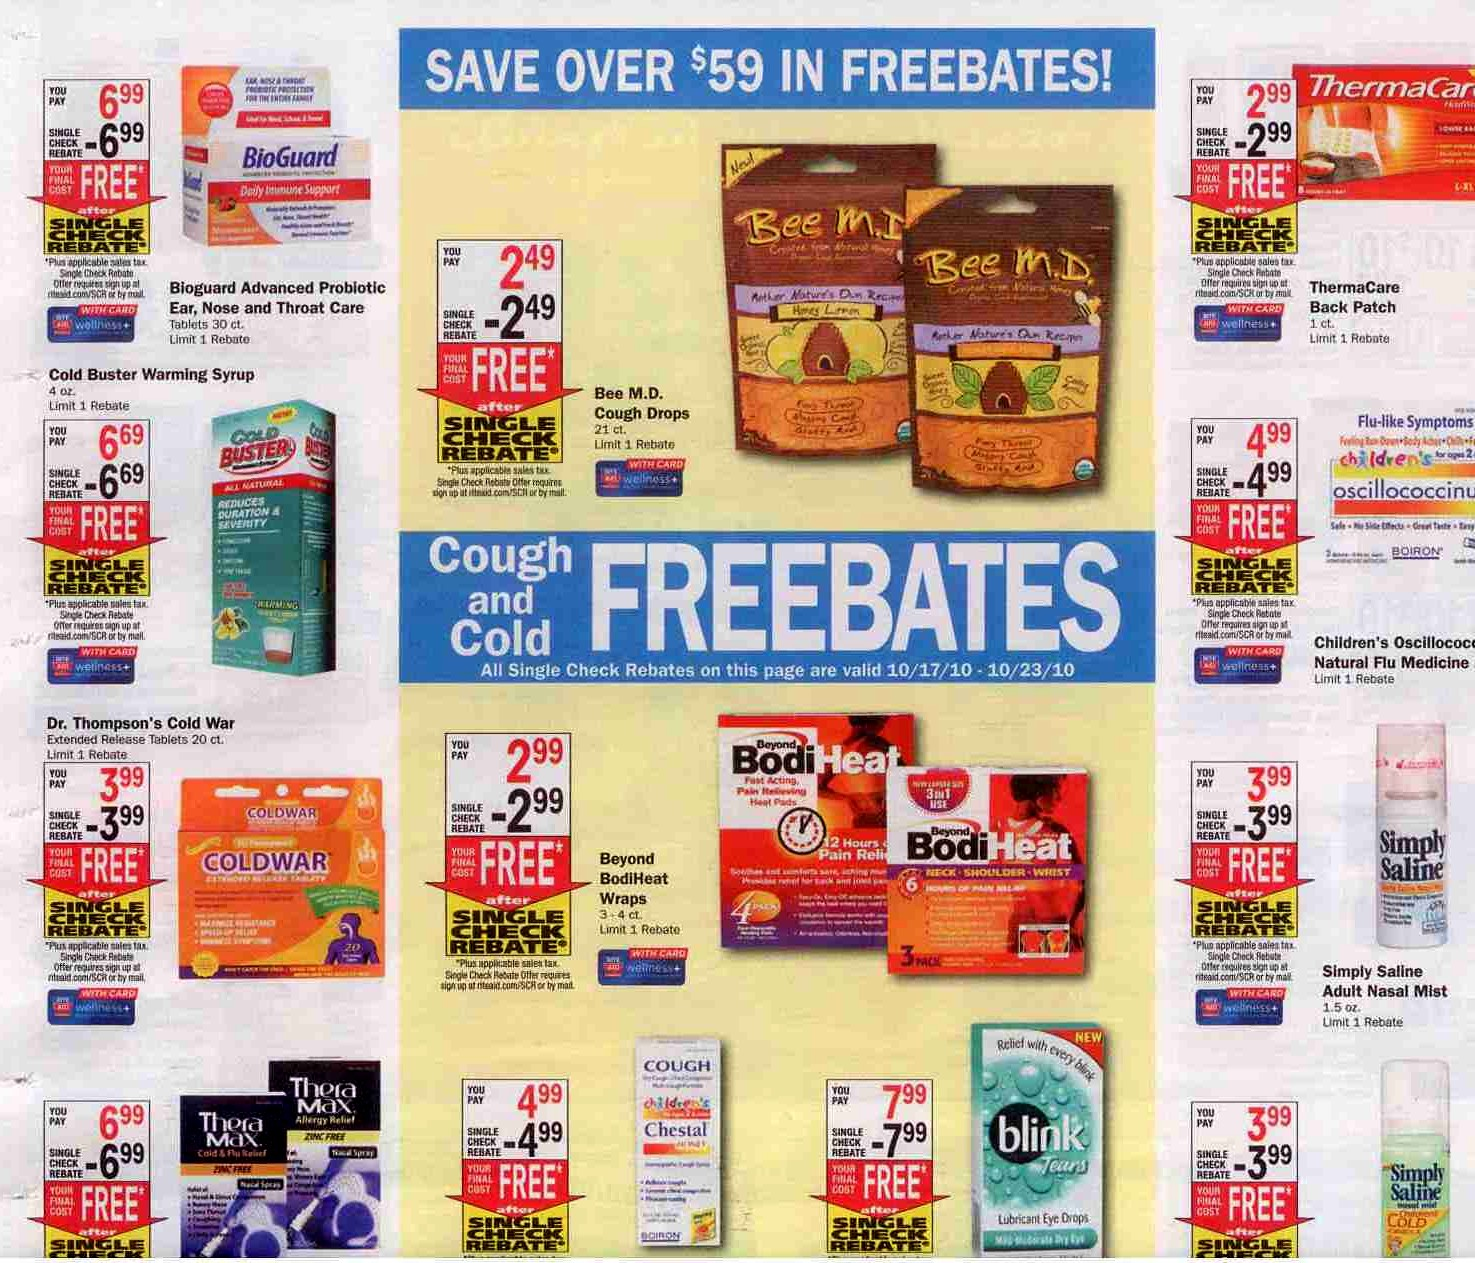 Rite aid coupon 5 off 25